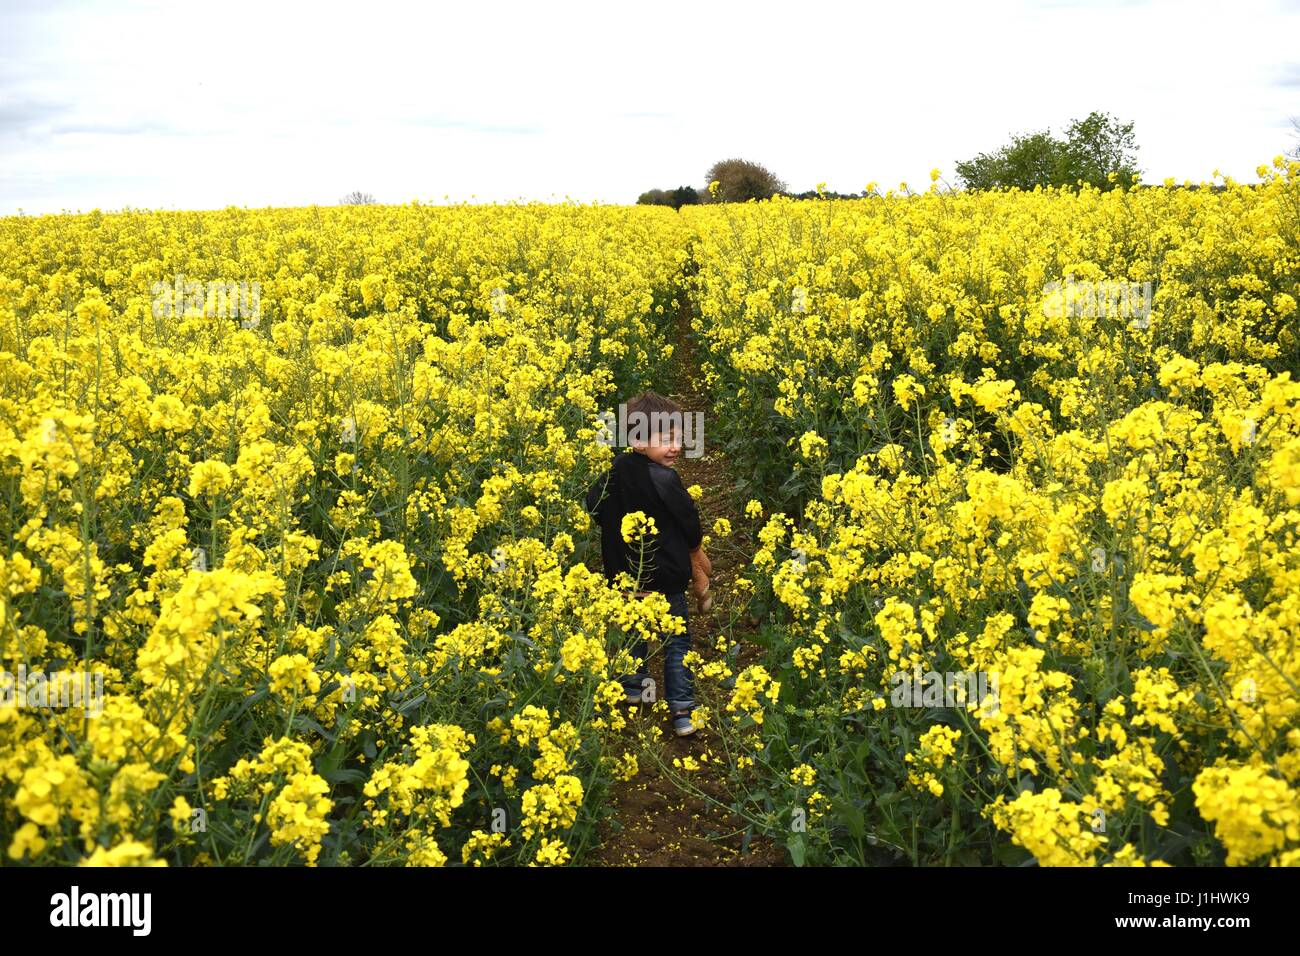 4 Year Old Little Boy In A Rapeseed Canola Field Of Yellow Flowers